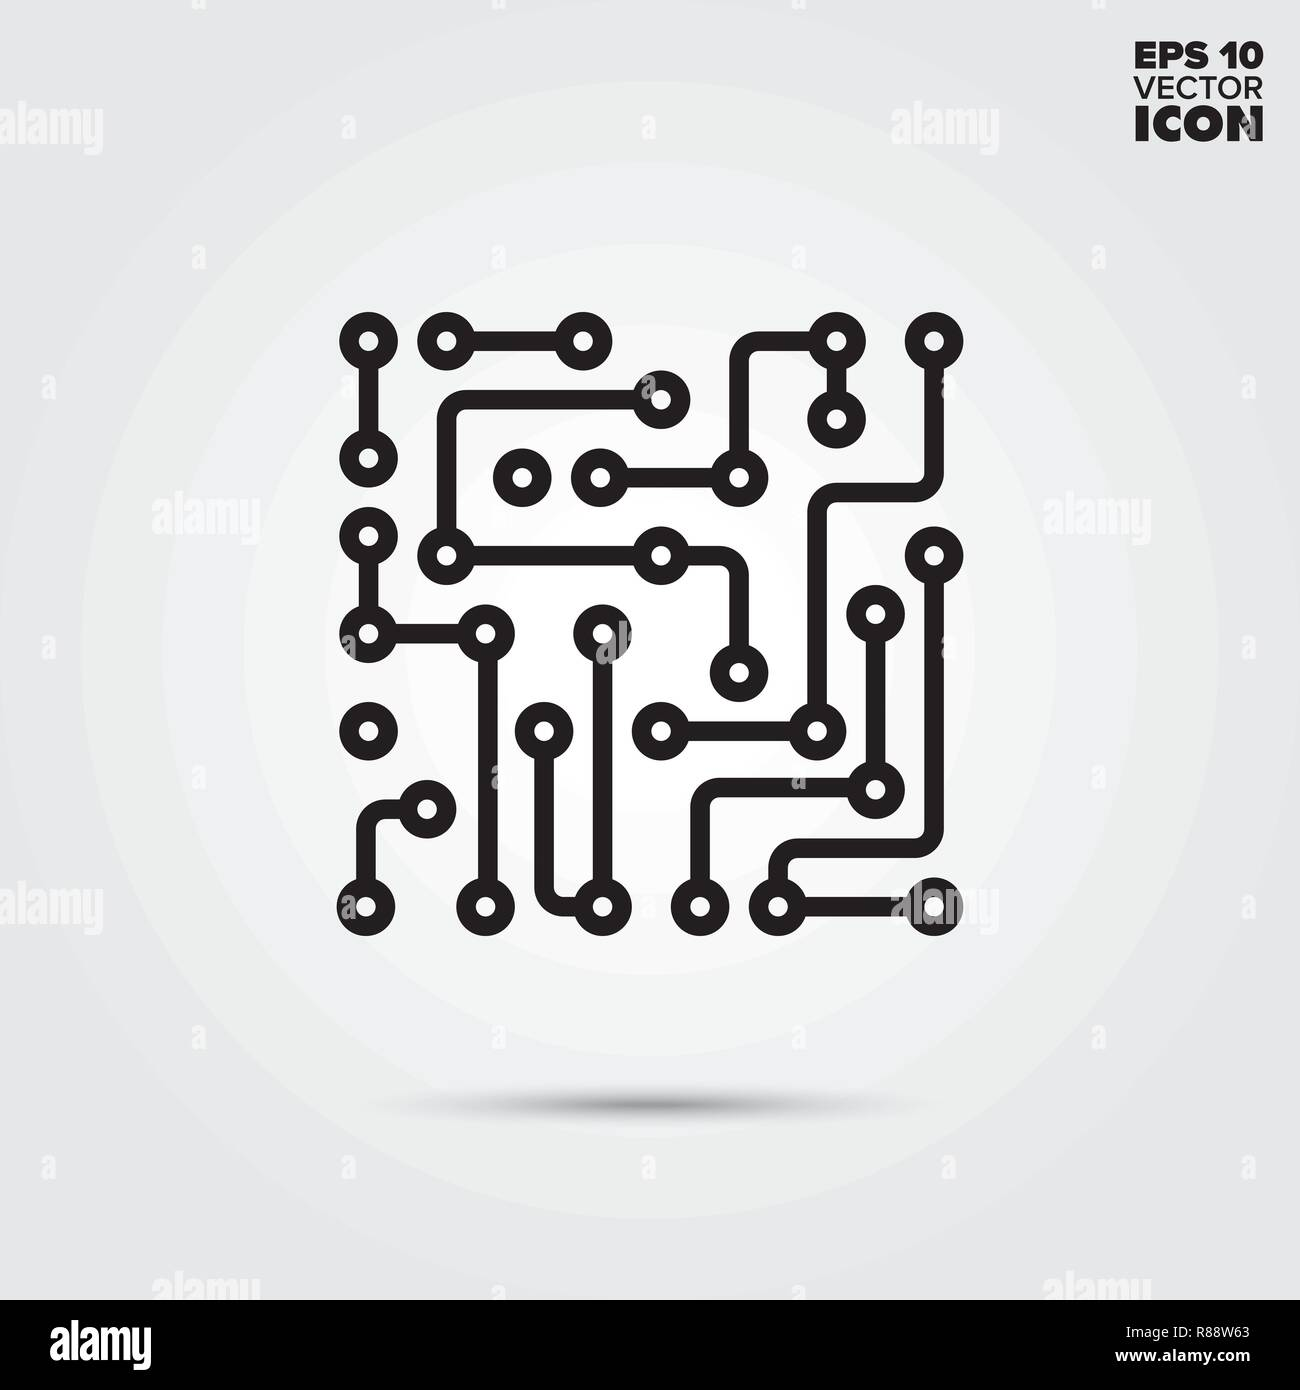 Electronic Circuit Line Icon Abstract Component Vector Symbols A That Symbol